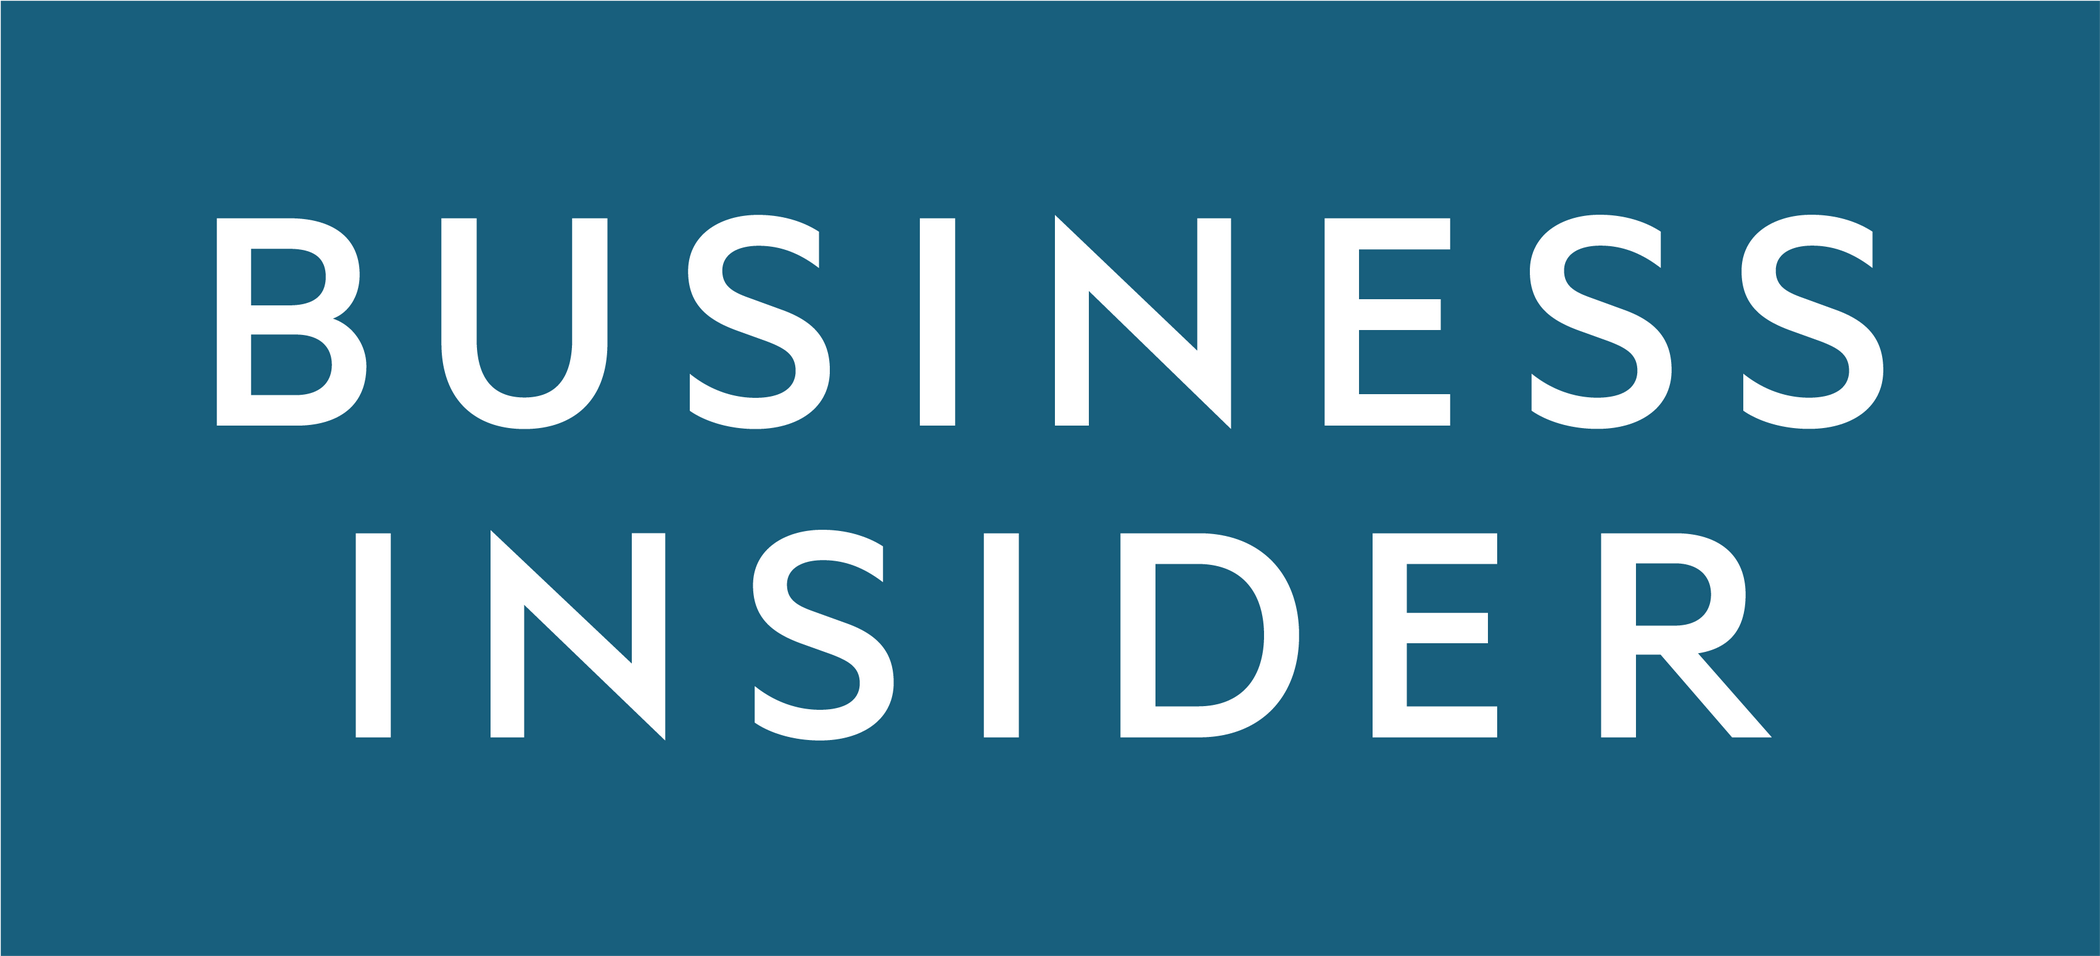 Business Insider Logo png